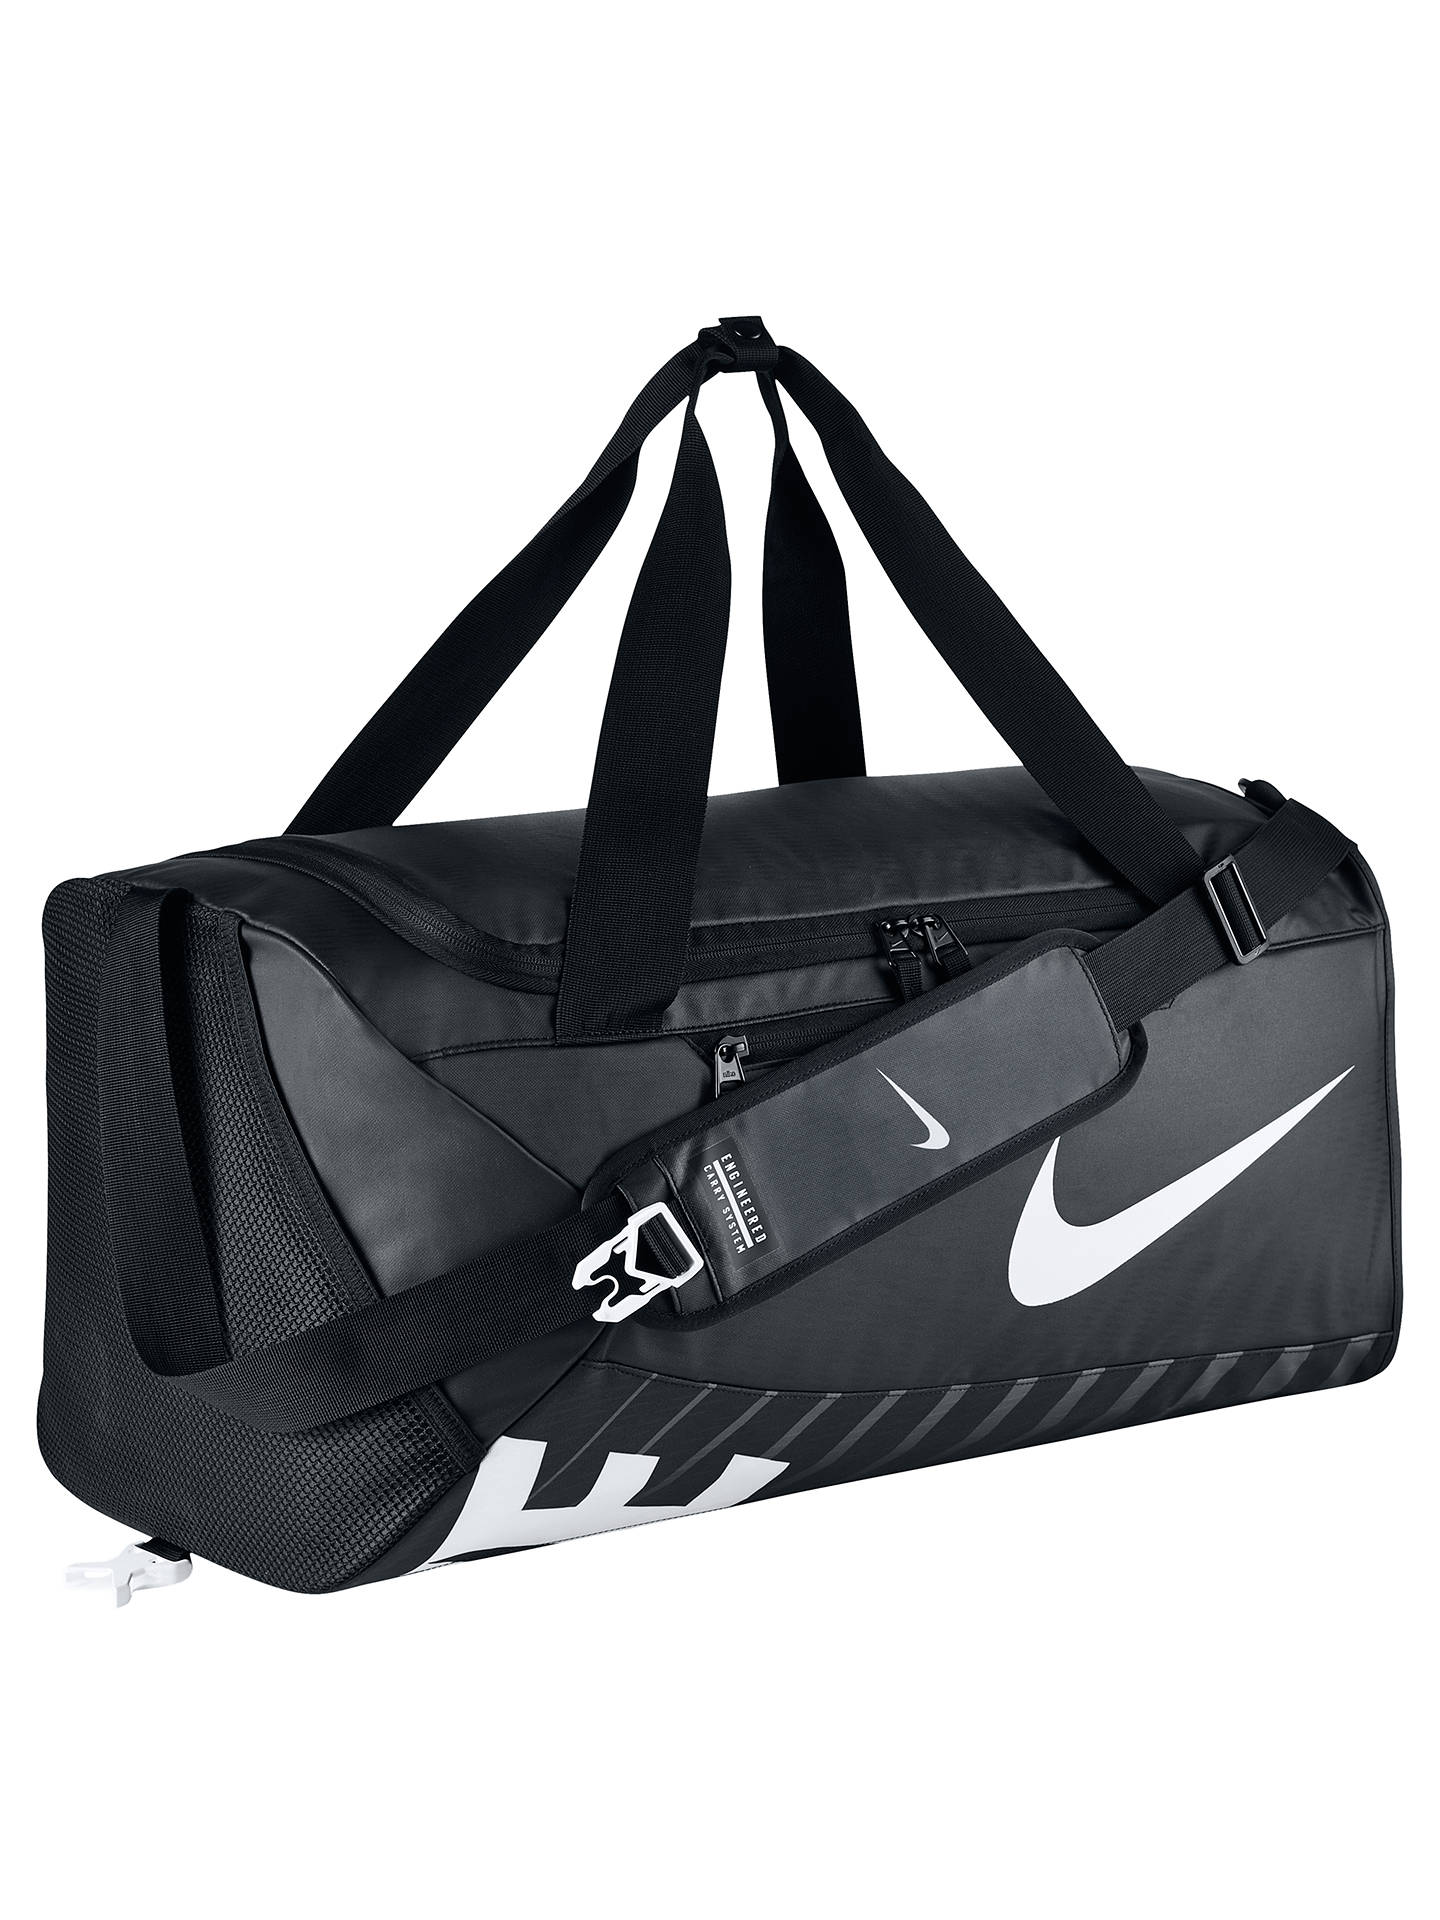 Nike Alpha Adapt Cross Body Training Duffle Bag Medium Black Online At Johnlewis